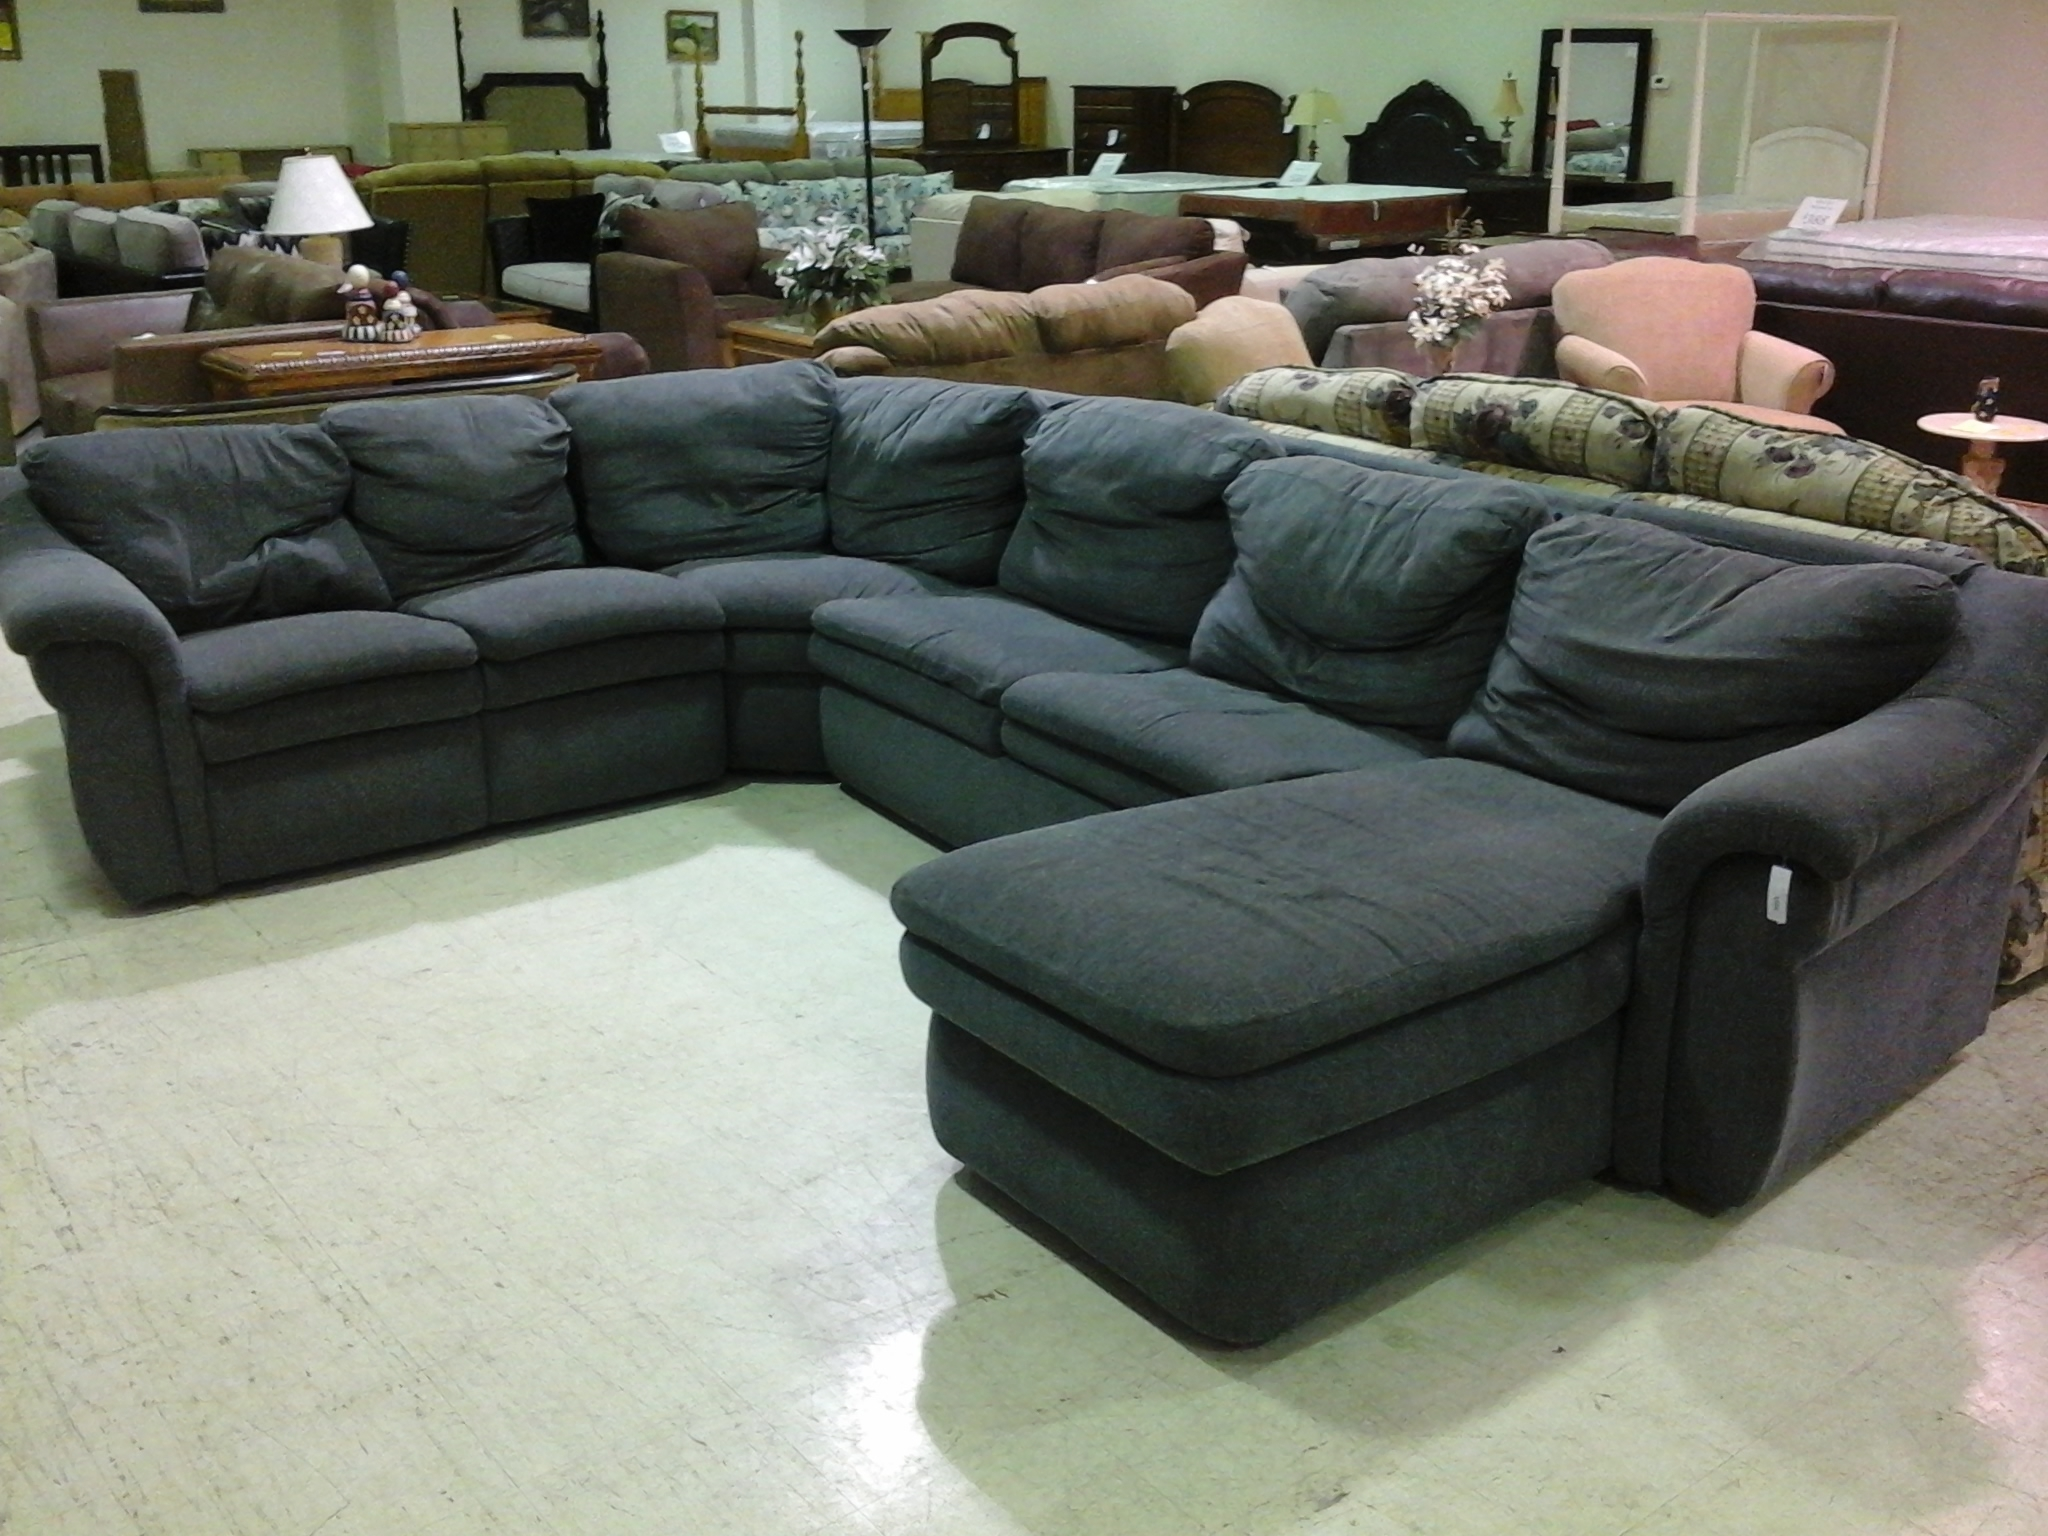 Queen Sofa Sleeper Sectional Microfiber – Cleanupflorida Inside Sleek Sectional Sofas (Image 10 of 10)